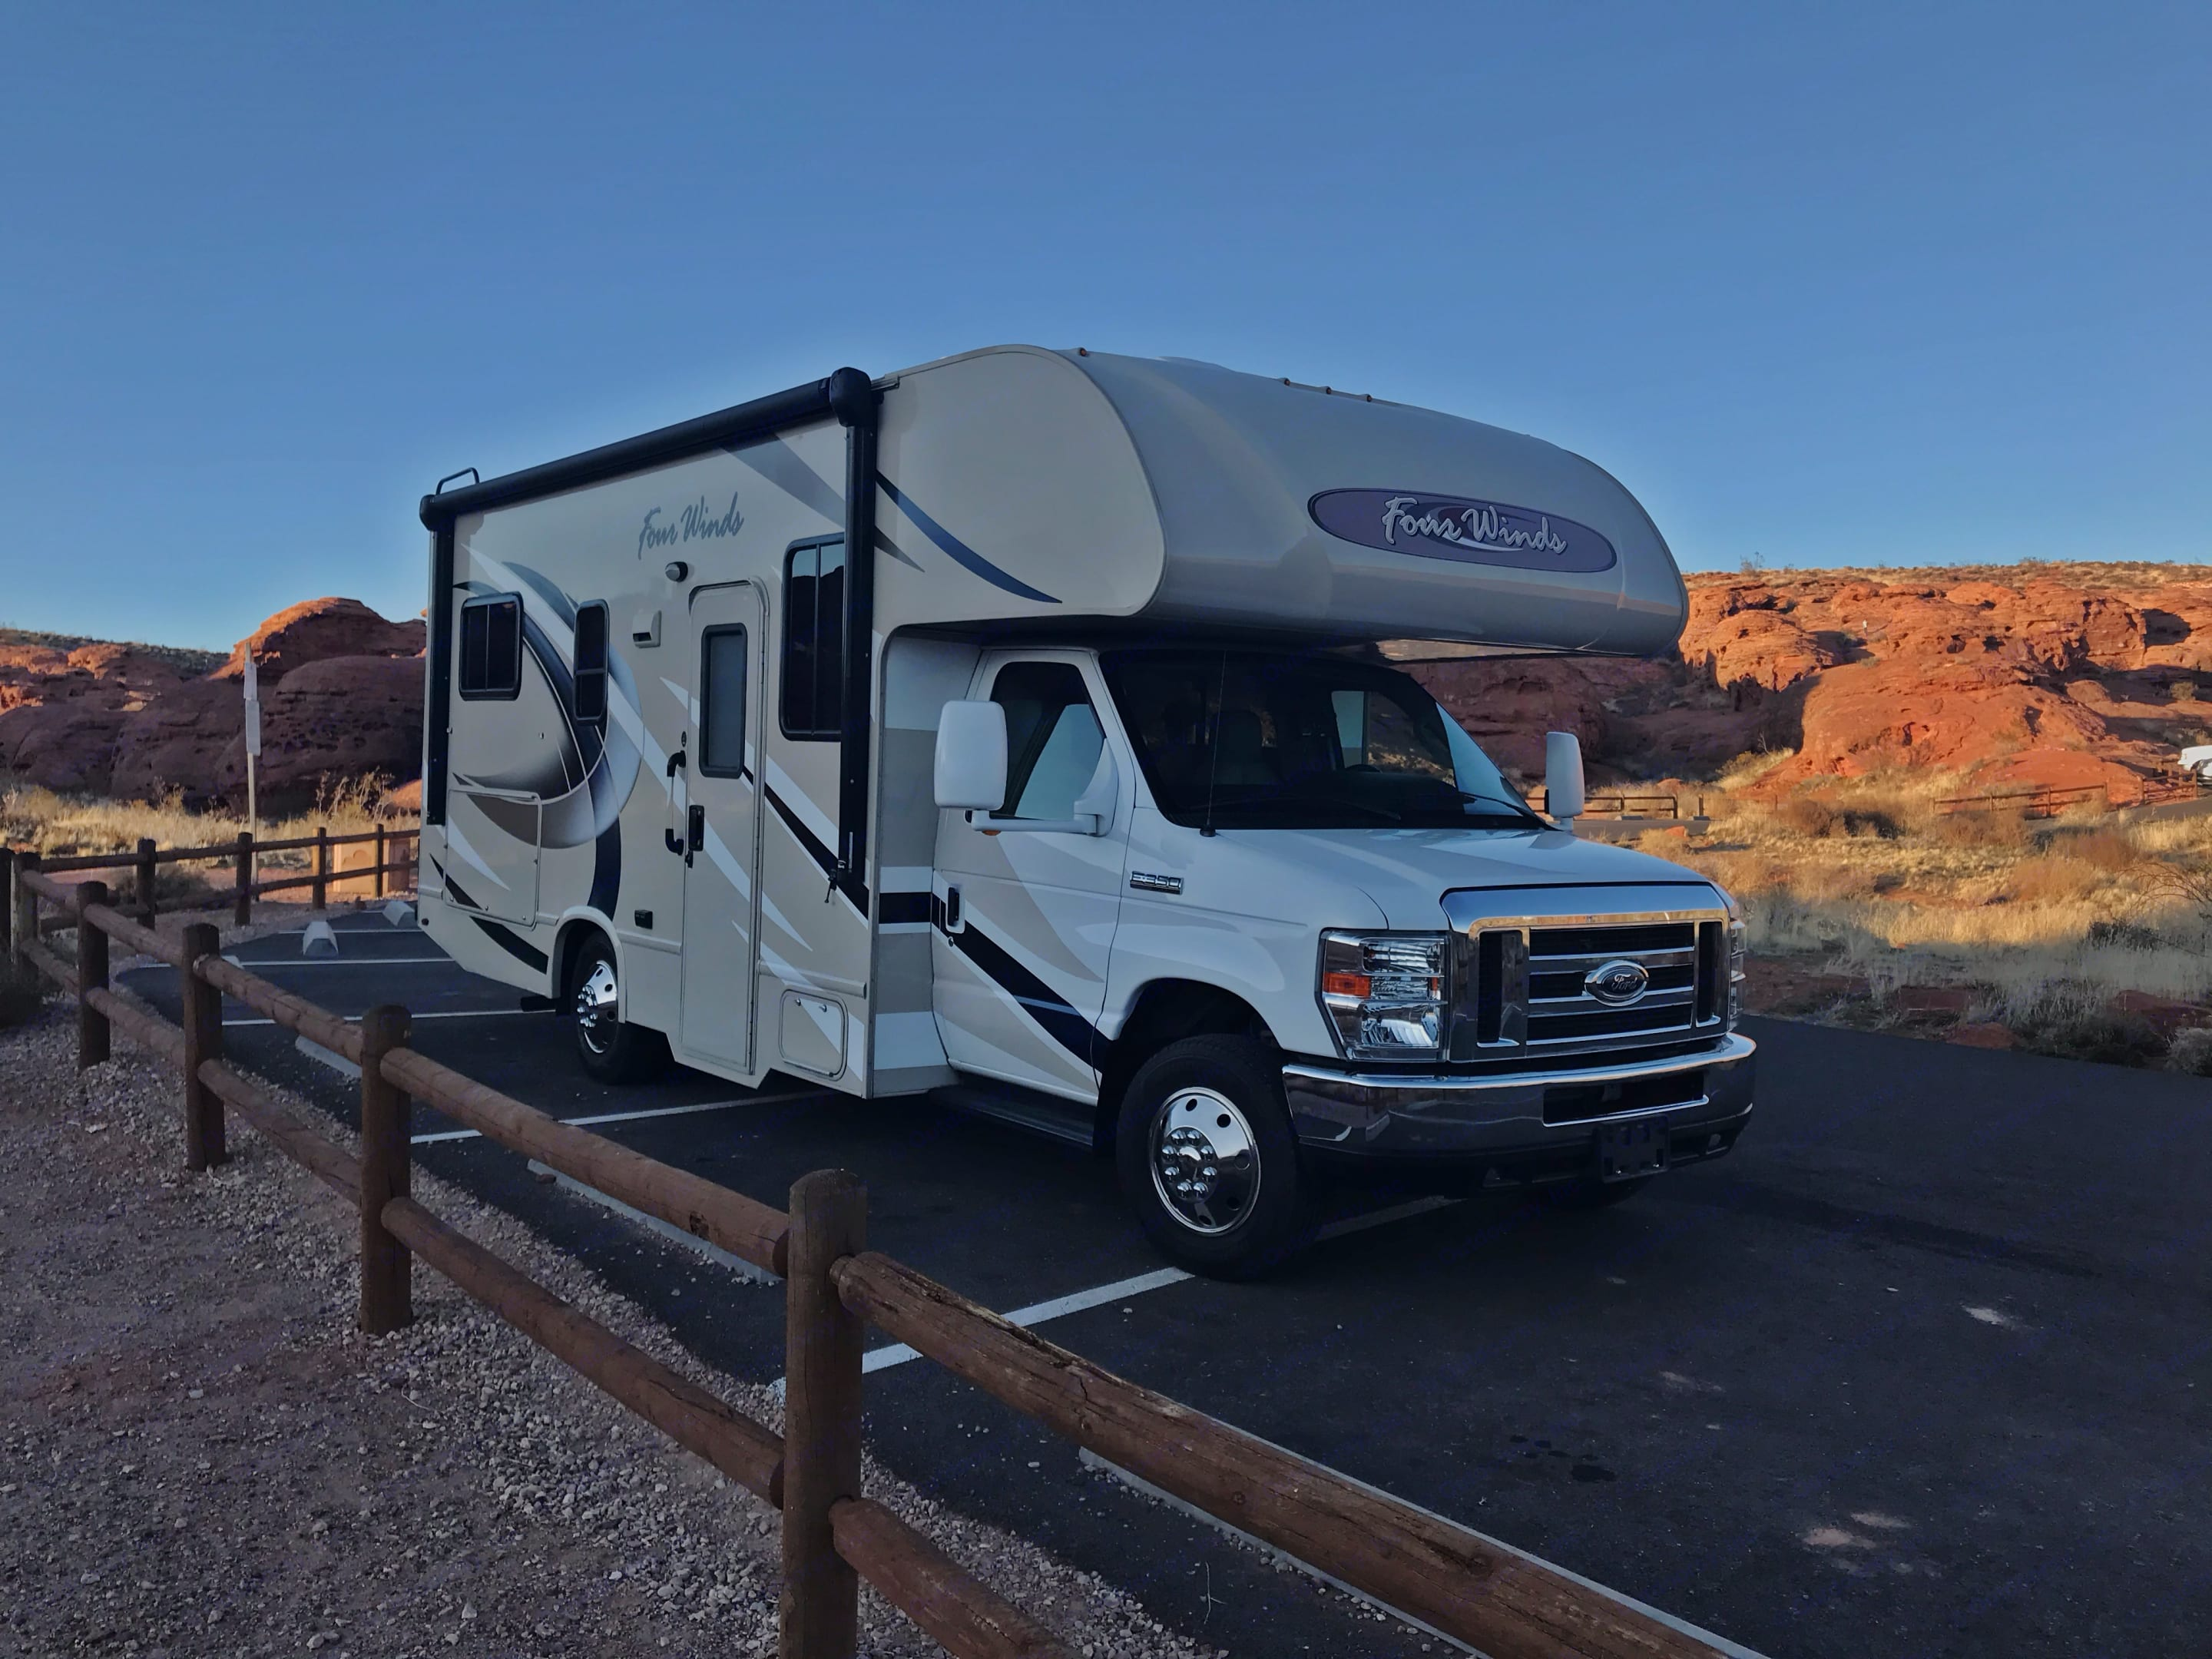 2018 Thor Four Winds. Thor Motor Coach Four Winds 2018